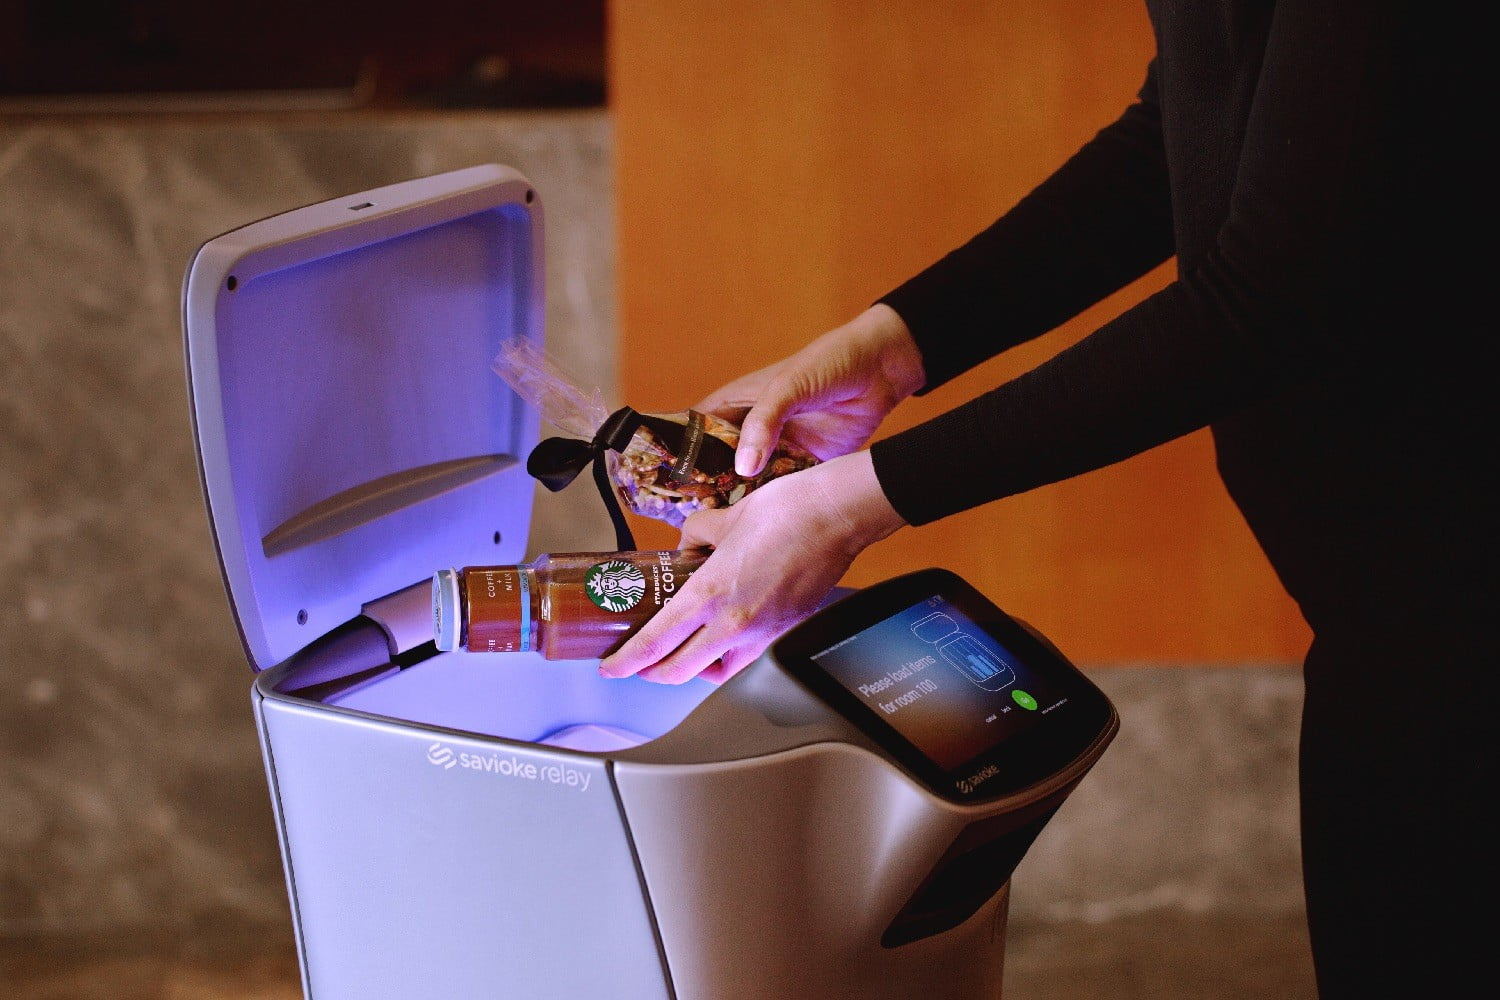 luxury apartment robot butler relay being loaded